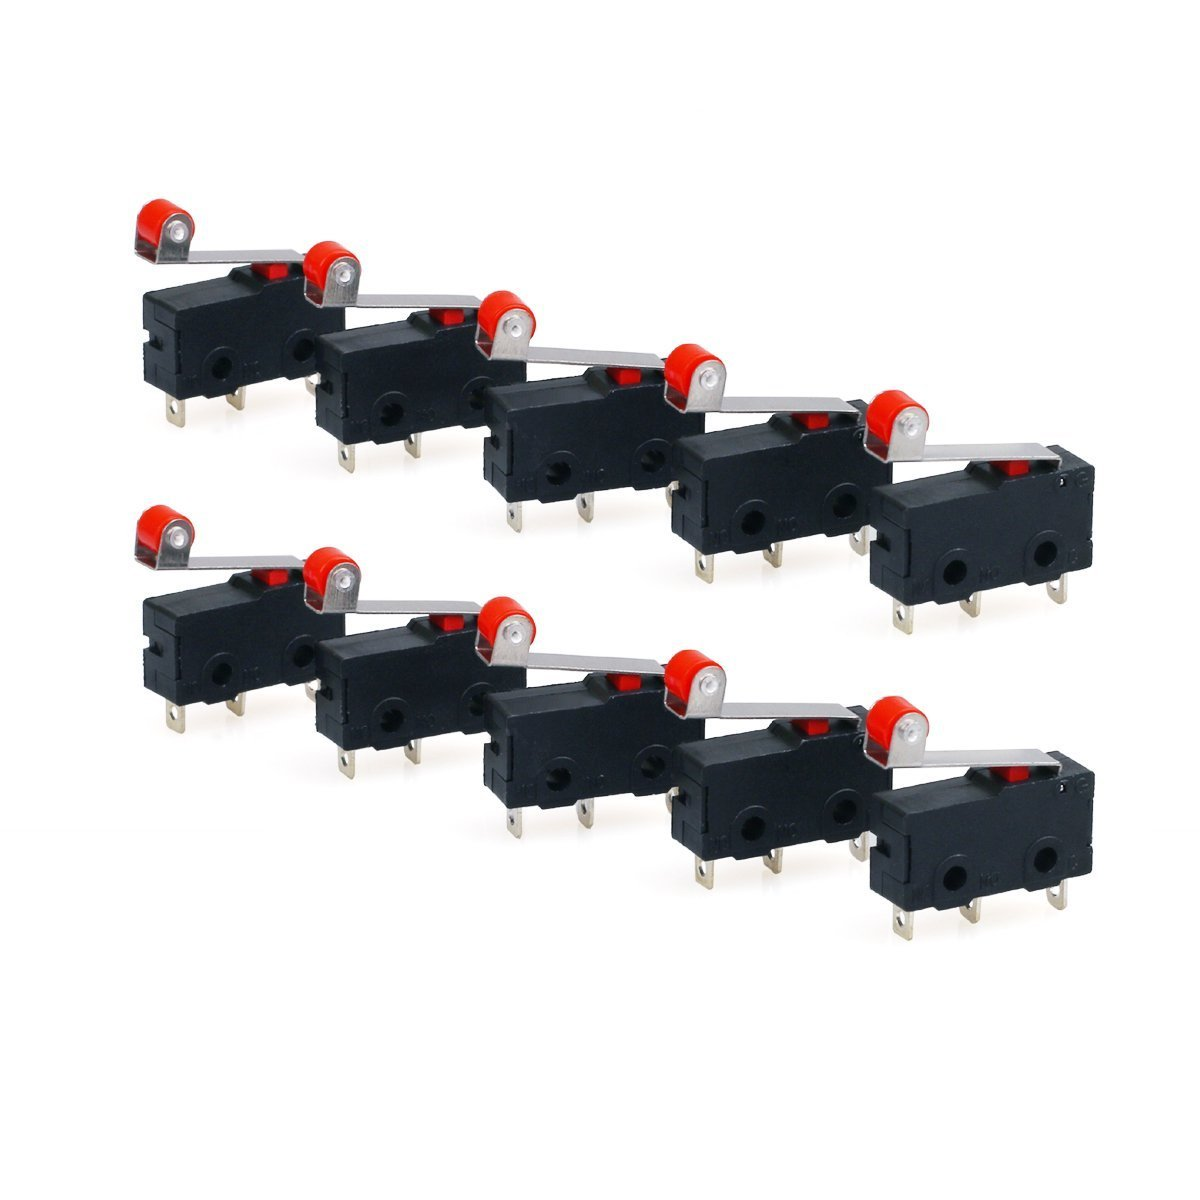 Urbestac 250v 5a Spdt 1no 1nc Momentary Hinge Roller Micro Switch With Lever Switches 3 Pins 10 Pcs Home Improvement